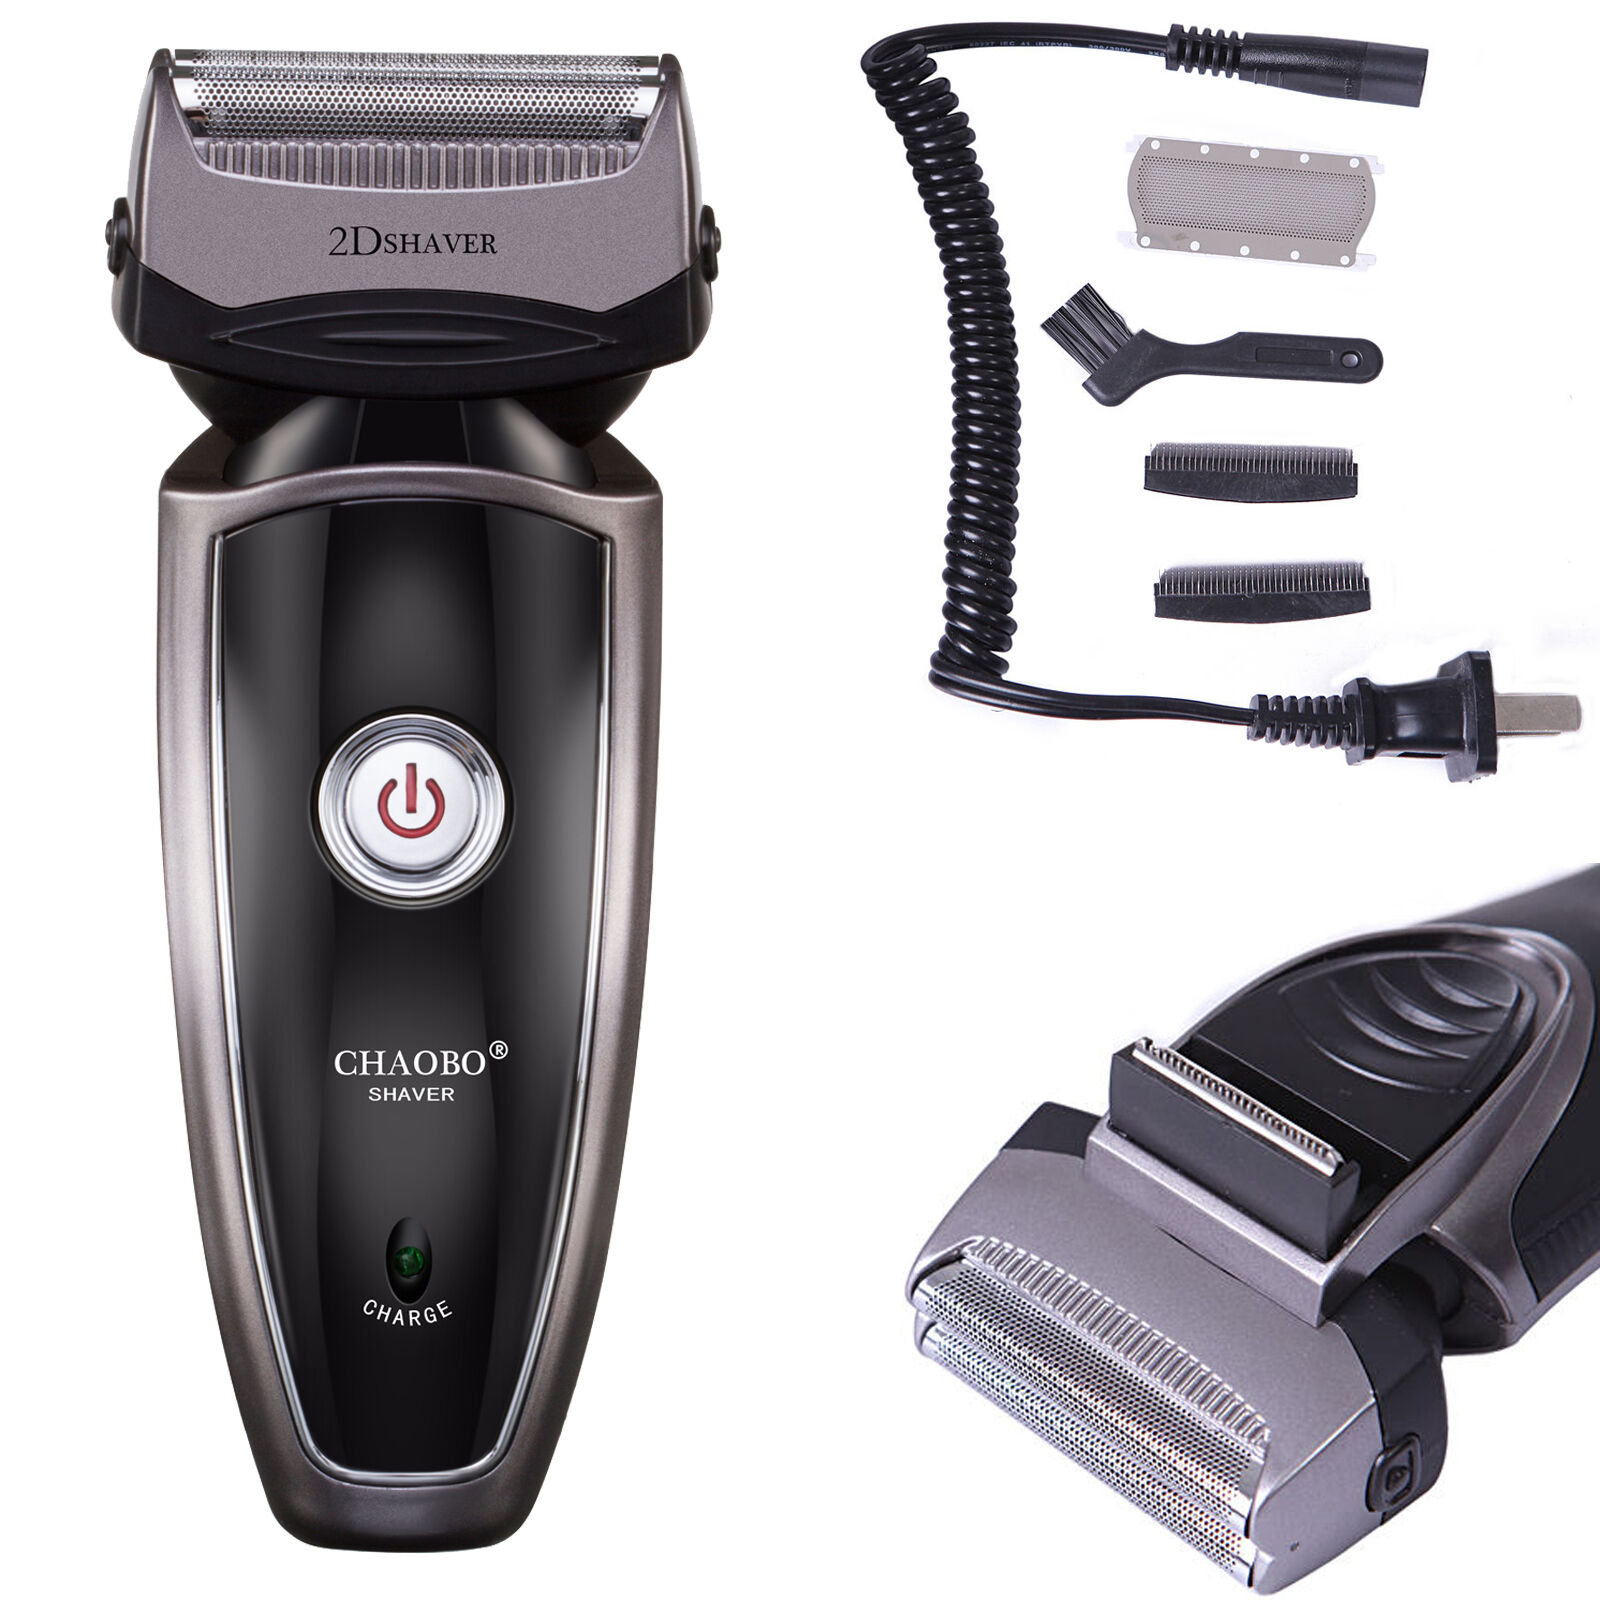 Men's Rechargeable Cordless Electric Razor Shaver Groomer Double Edge Trimmer US Electric Shavers